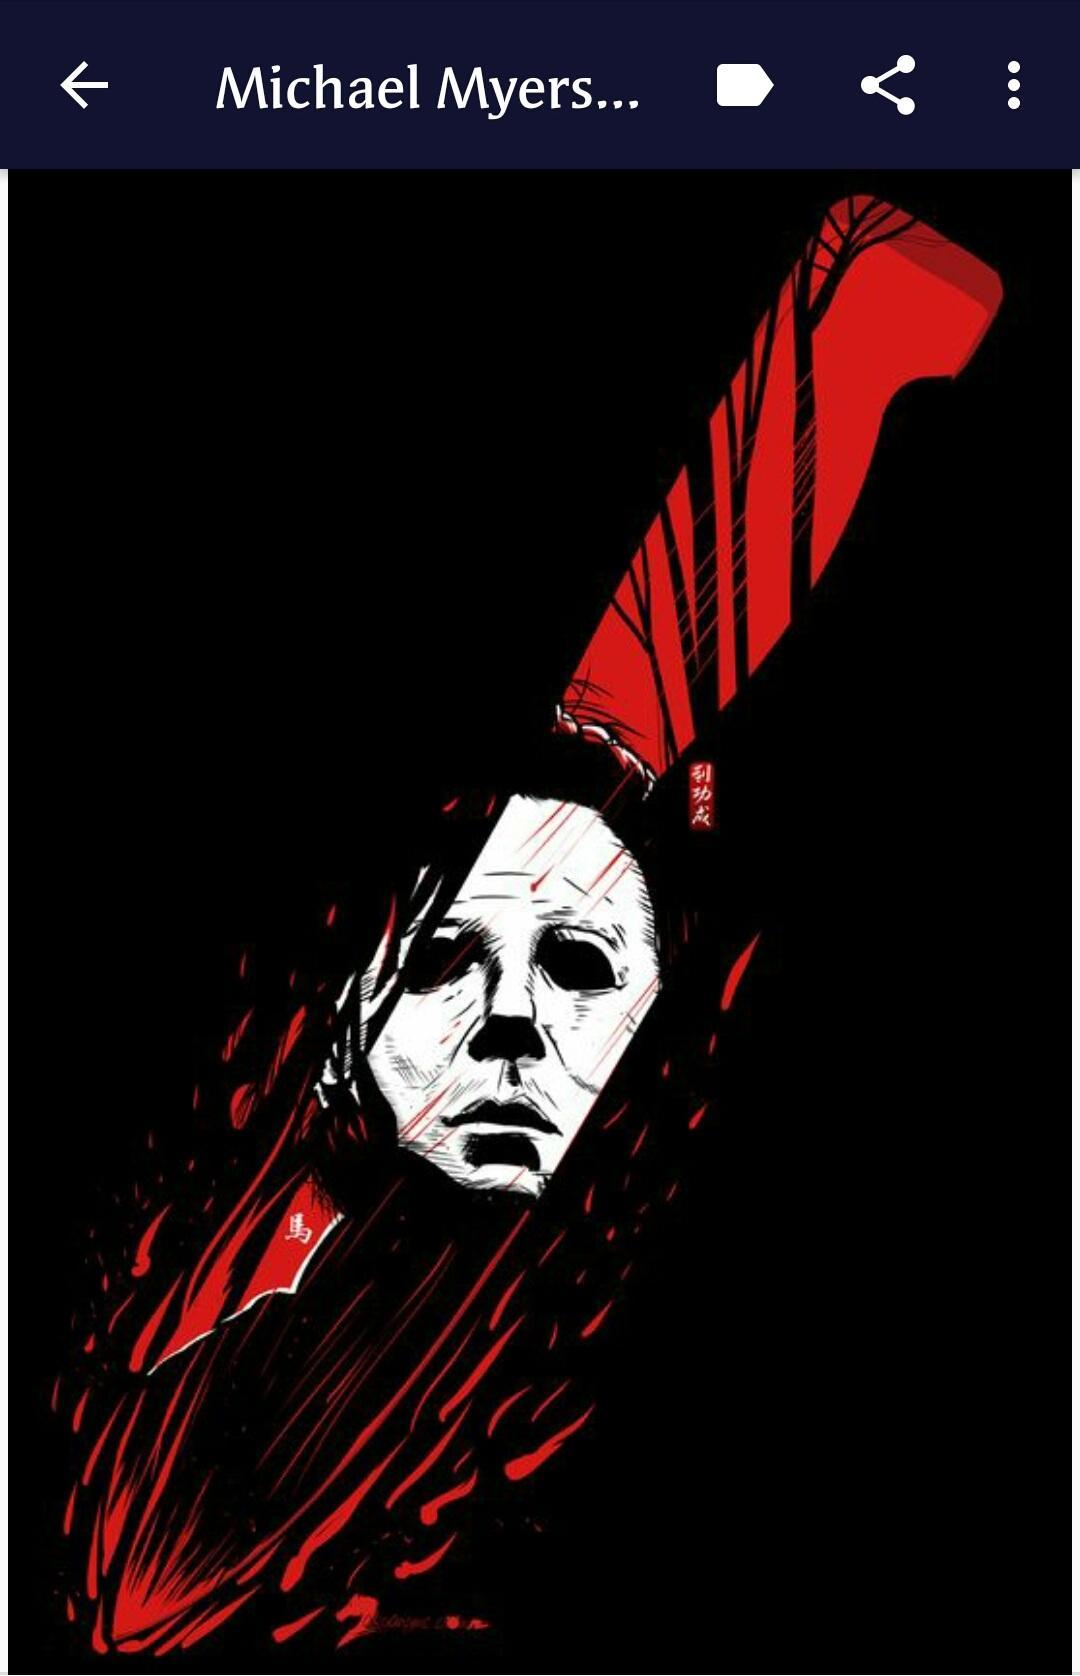 Michael Myers Wallpaper For Android Apk Download